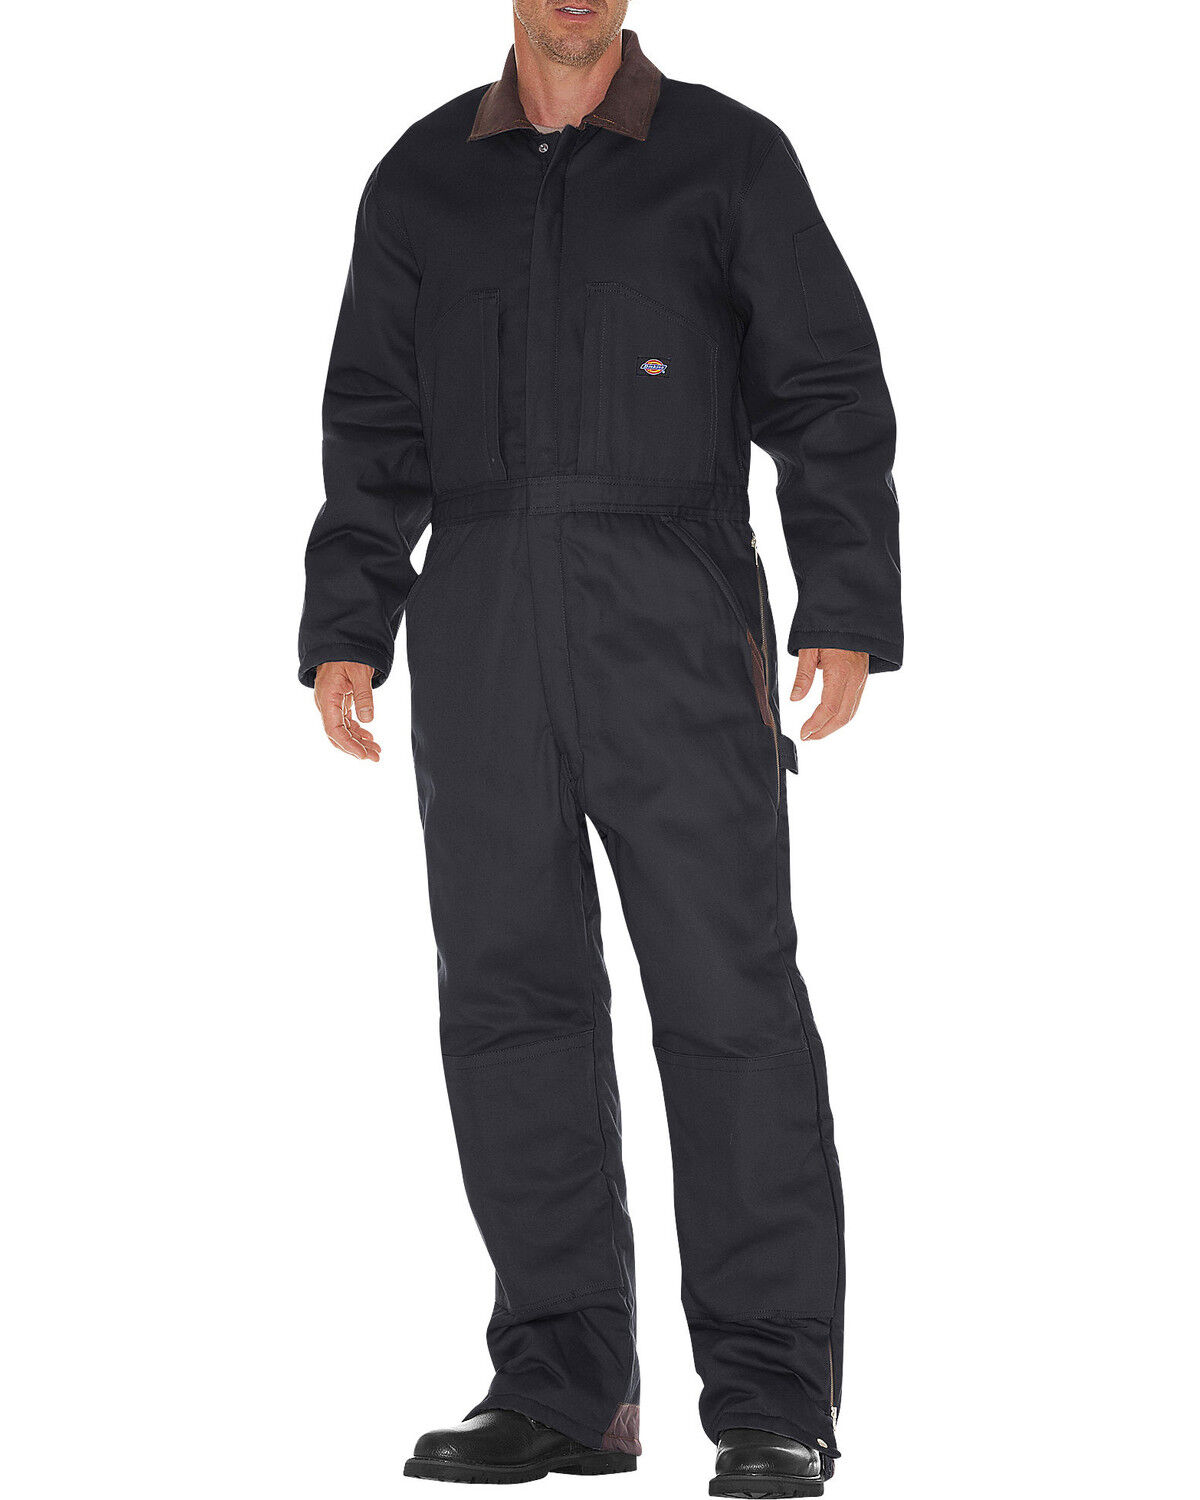 Men's Workwear on Sale